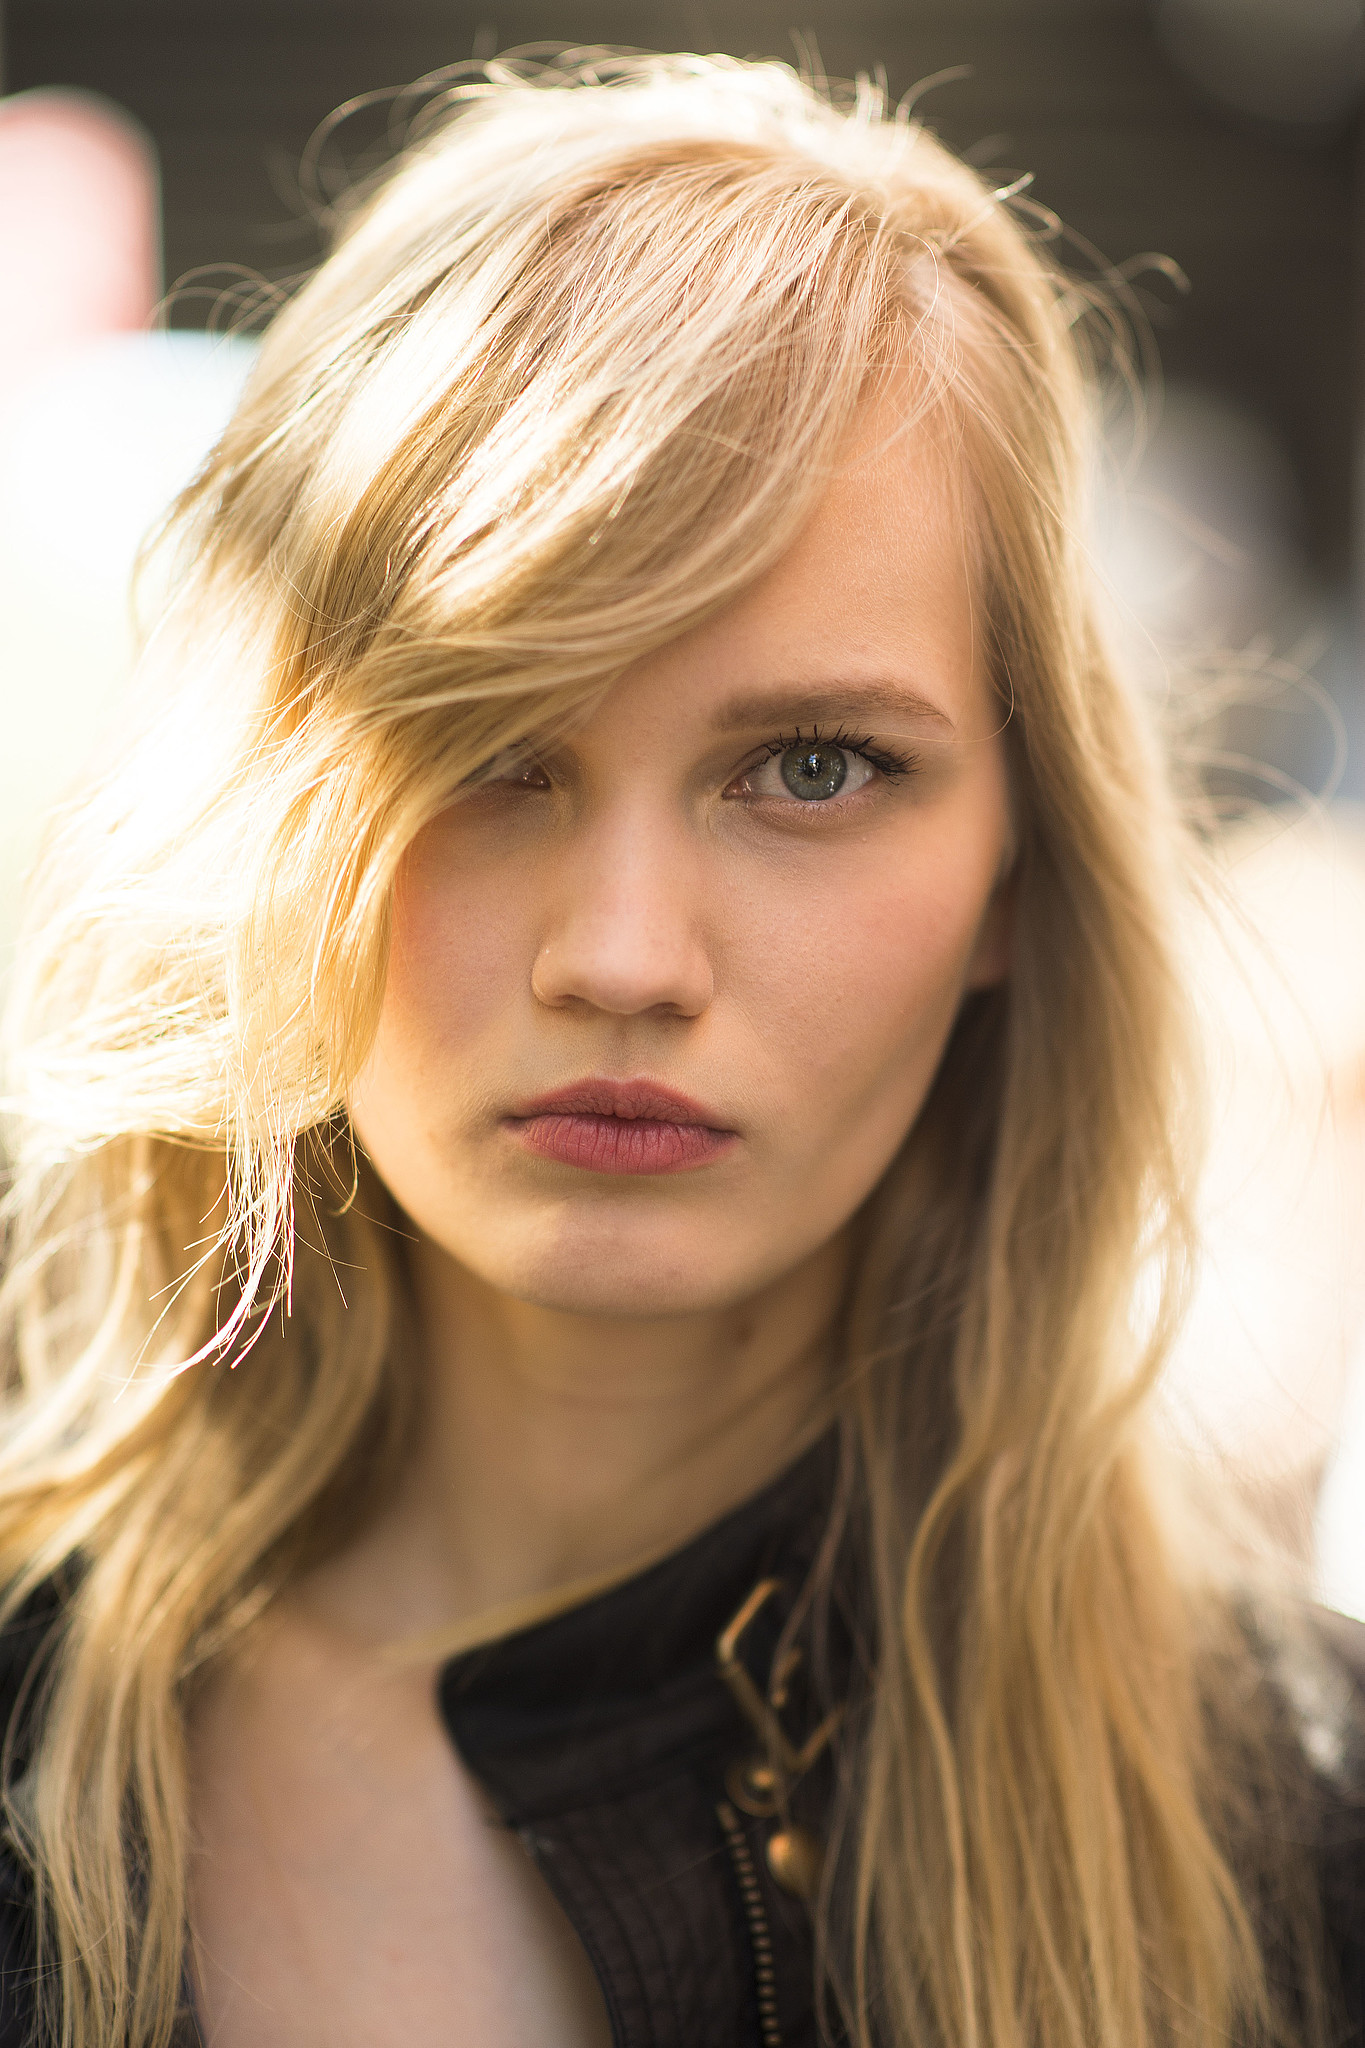 Sideswept bangs with soft waves are always flattering. Sour